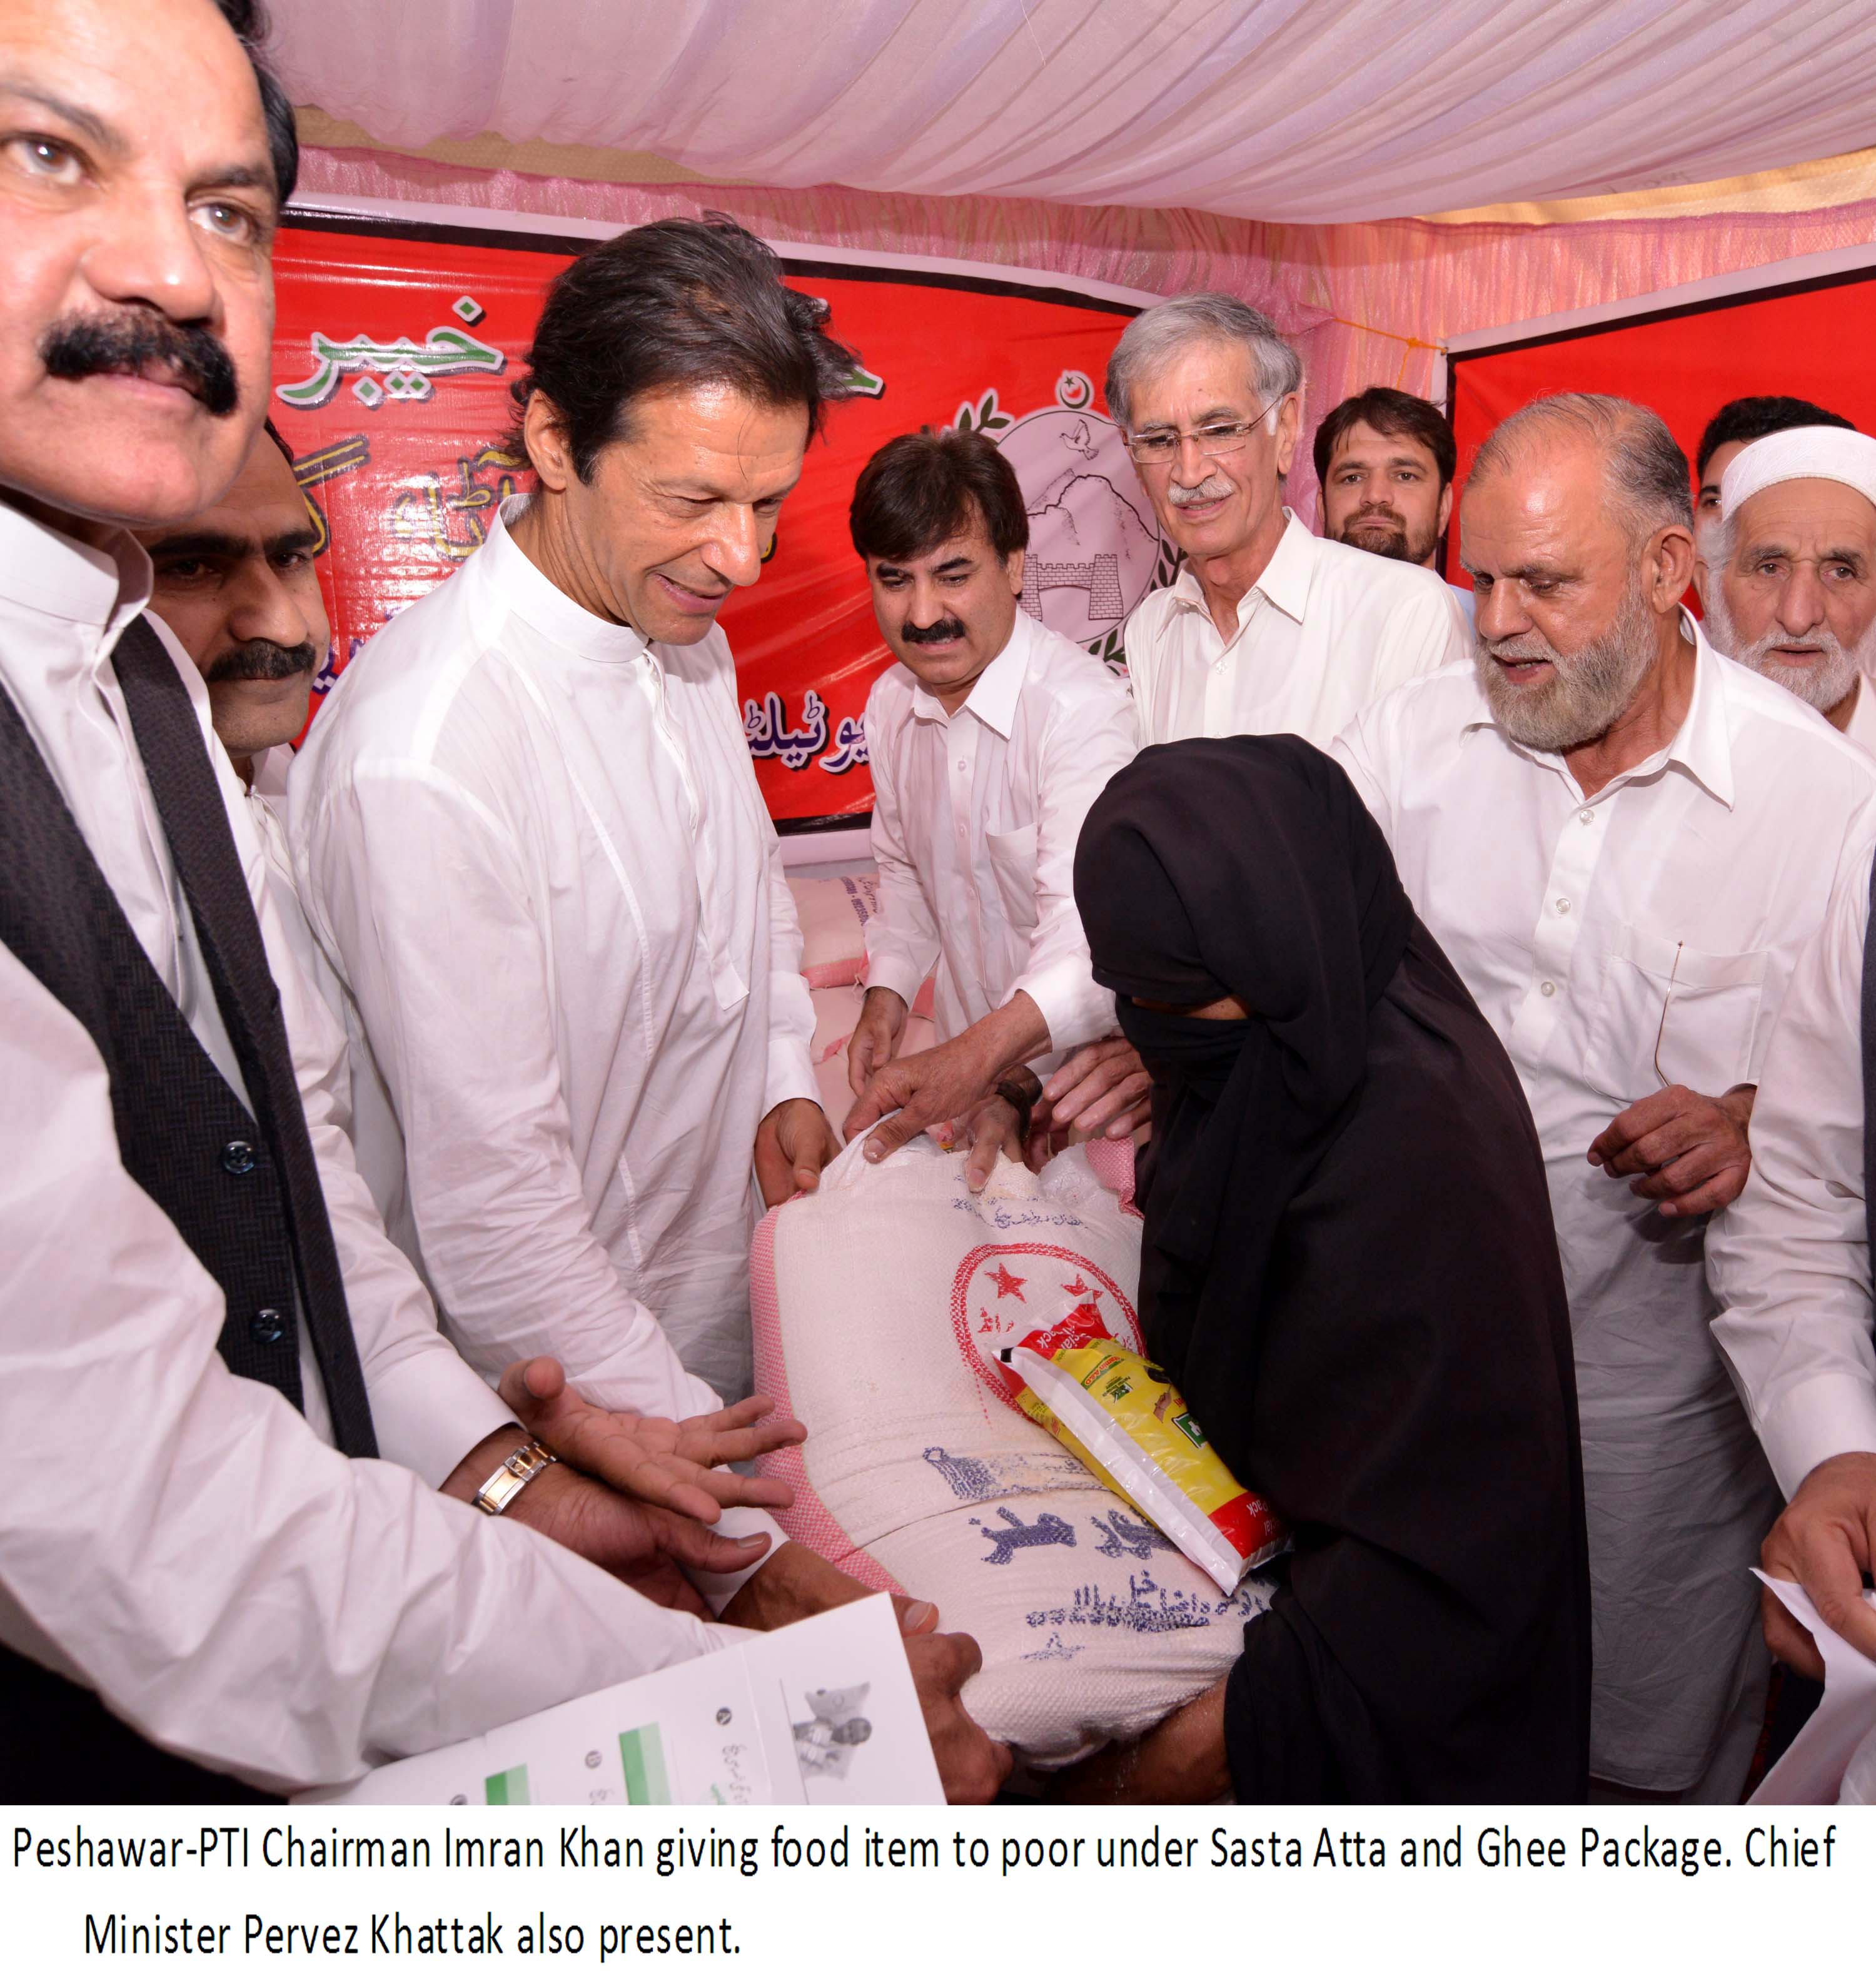 KPK Insaf Card Launched For Sasta Atta, Ghee Package